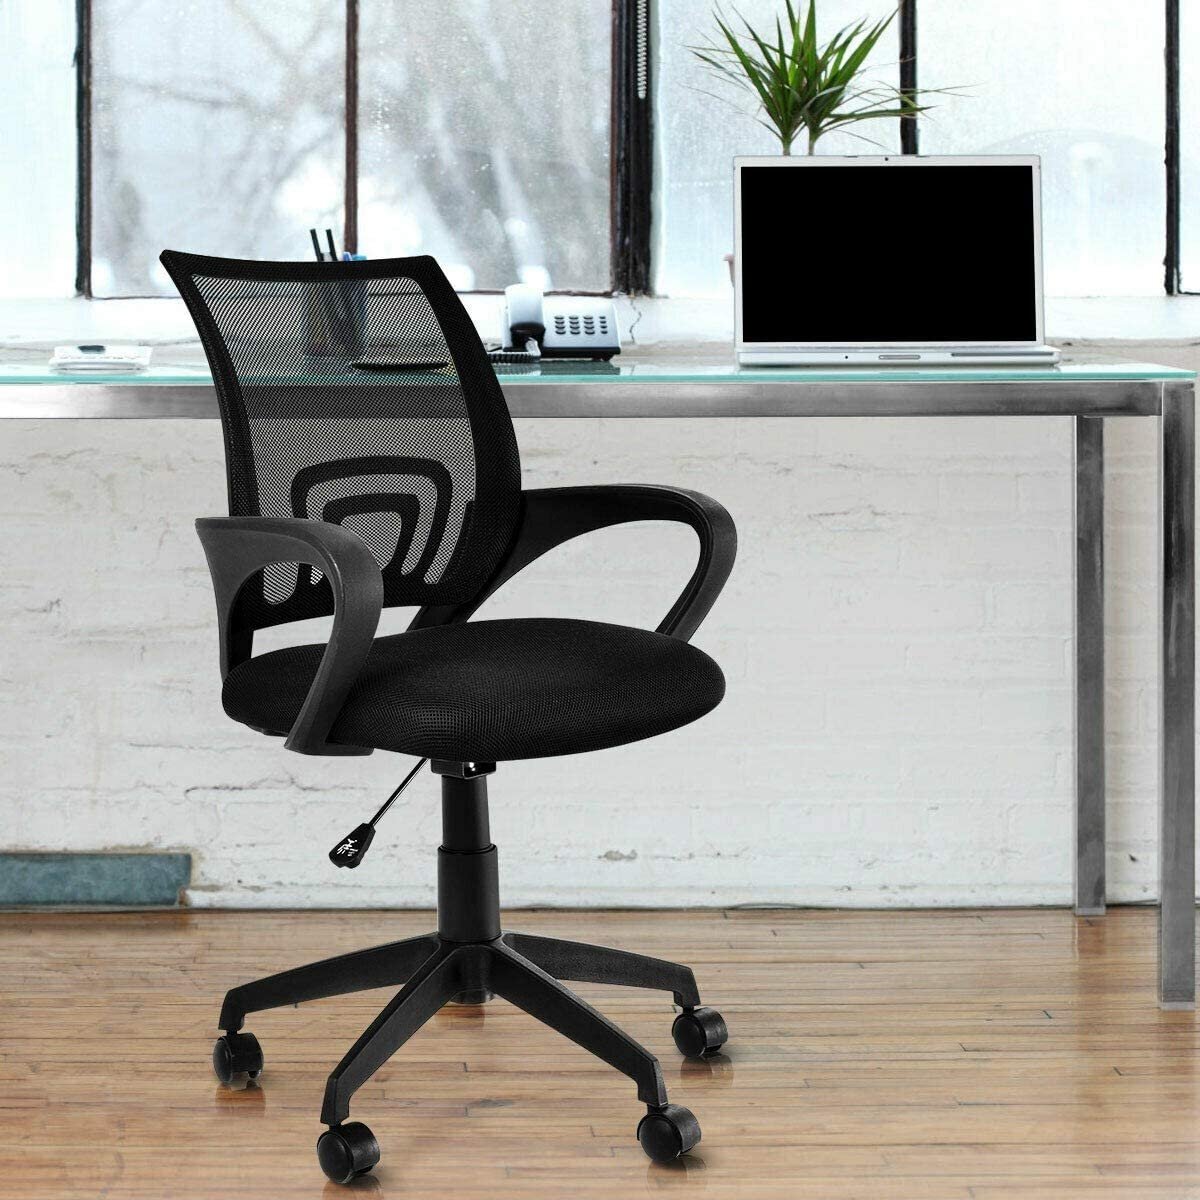 Amazon Com Kovalenthor Ergonomic Office Chair Ergonomic Computer Chair Computer Desk Task Chair With Armrests Black Kitchen Dining